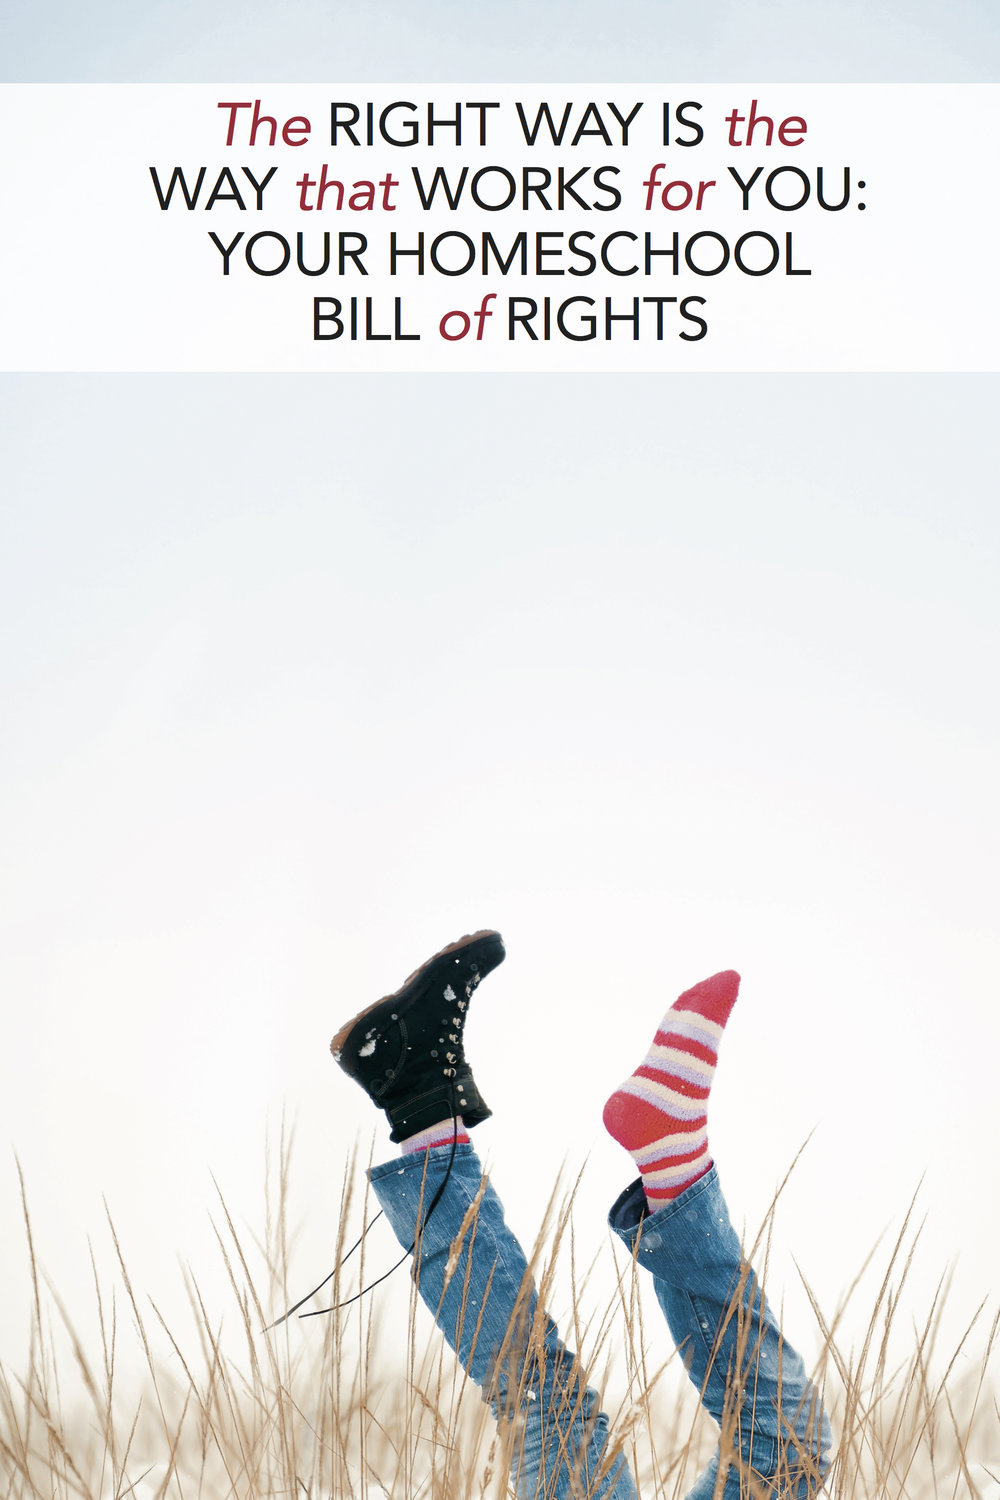 Your Homeschool Bill of Rights: There is no single right way to homeschool. What works for your family is right for your family—and if that right thing changes from year to year (or month to month), that's okay.